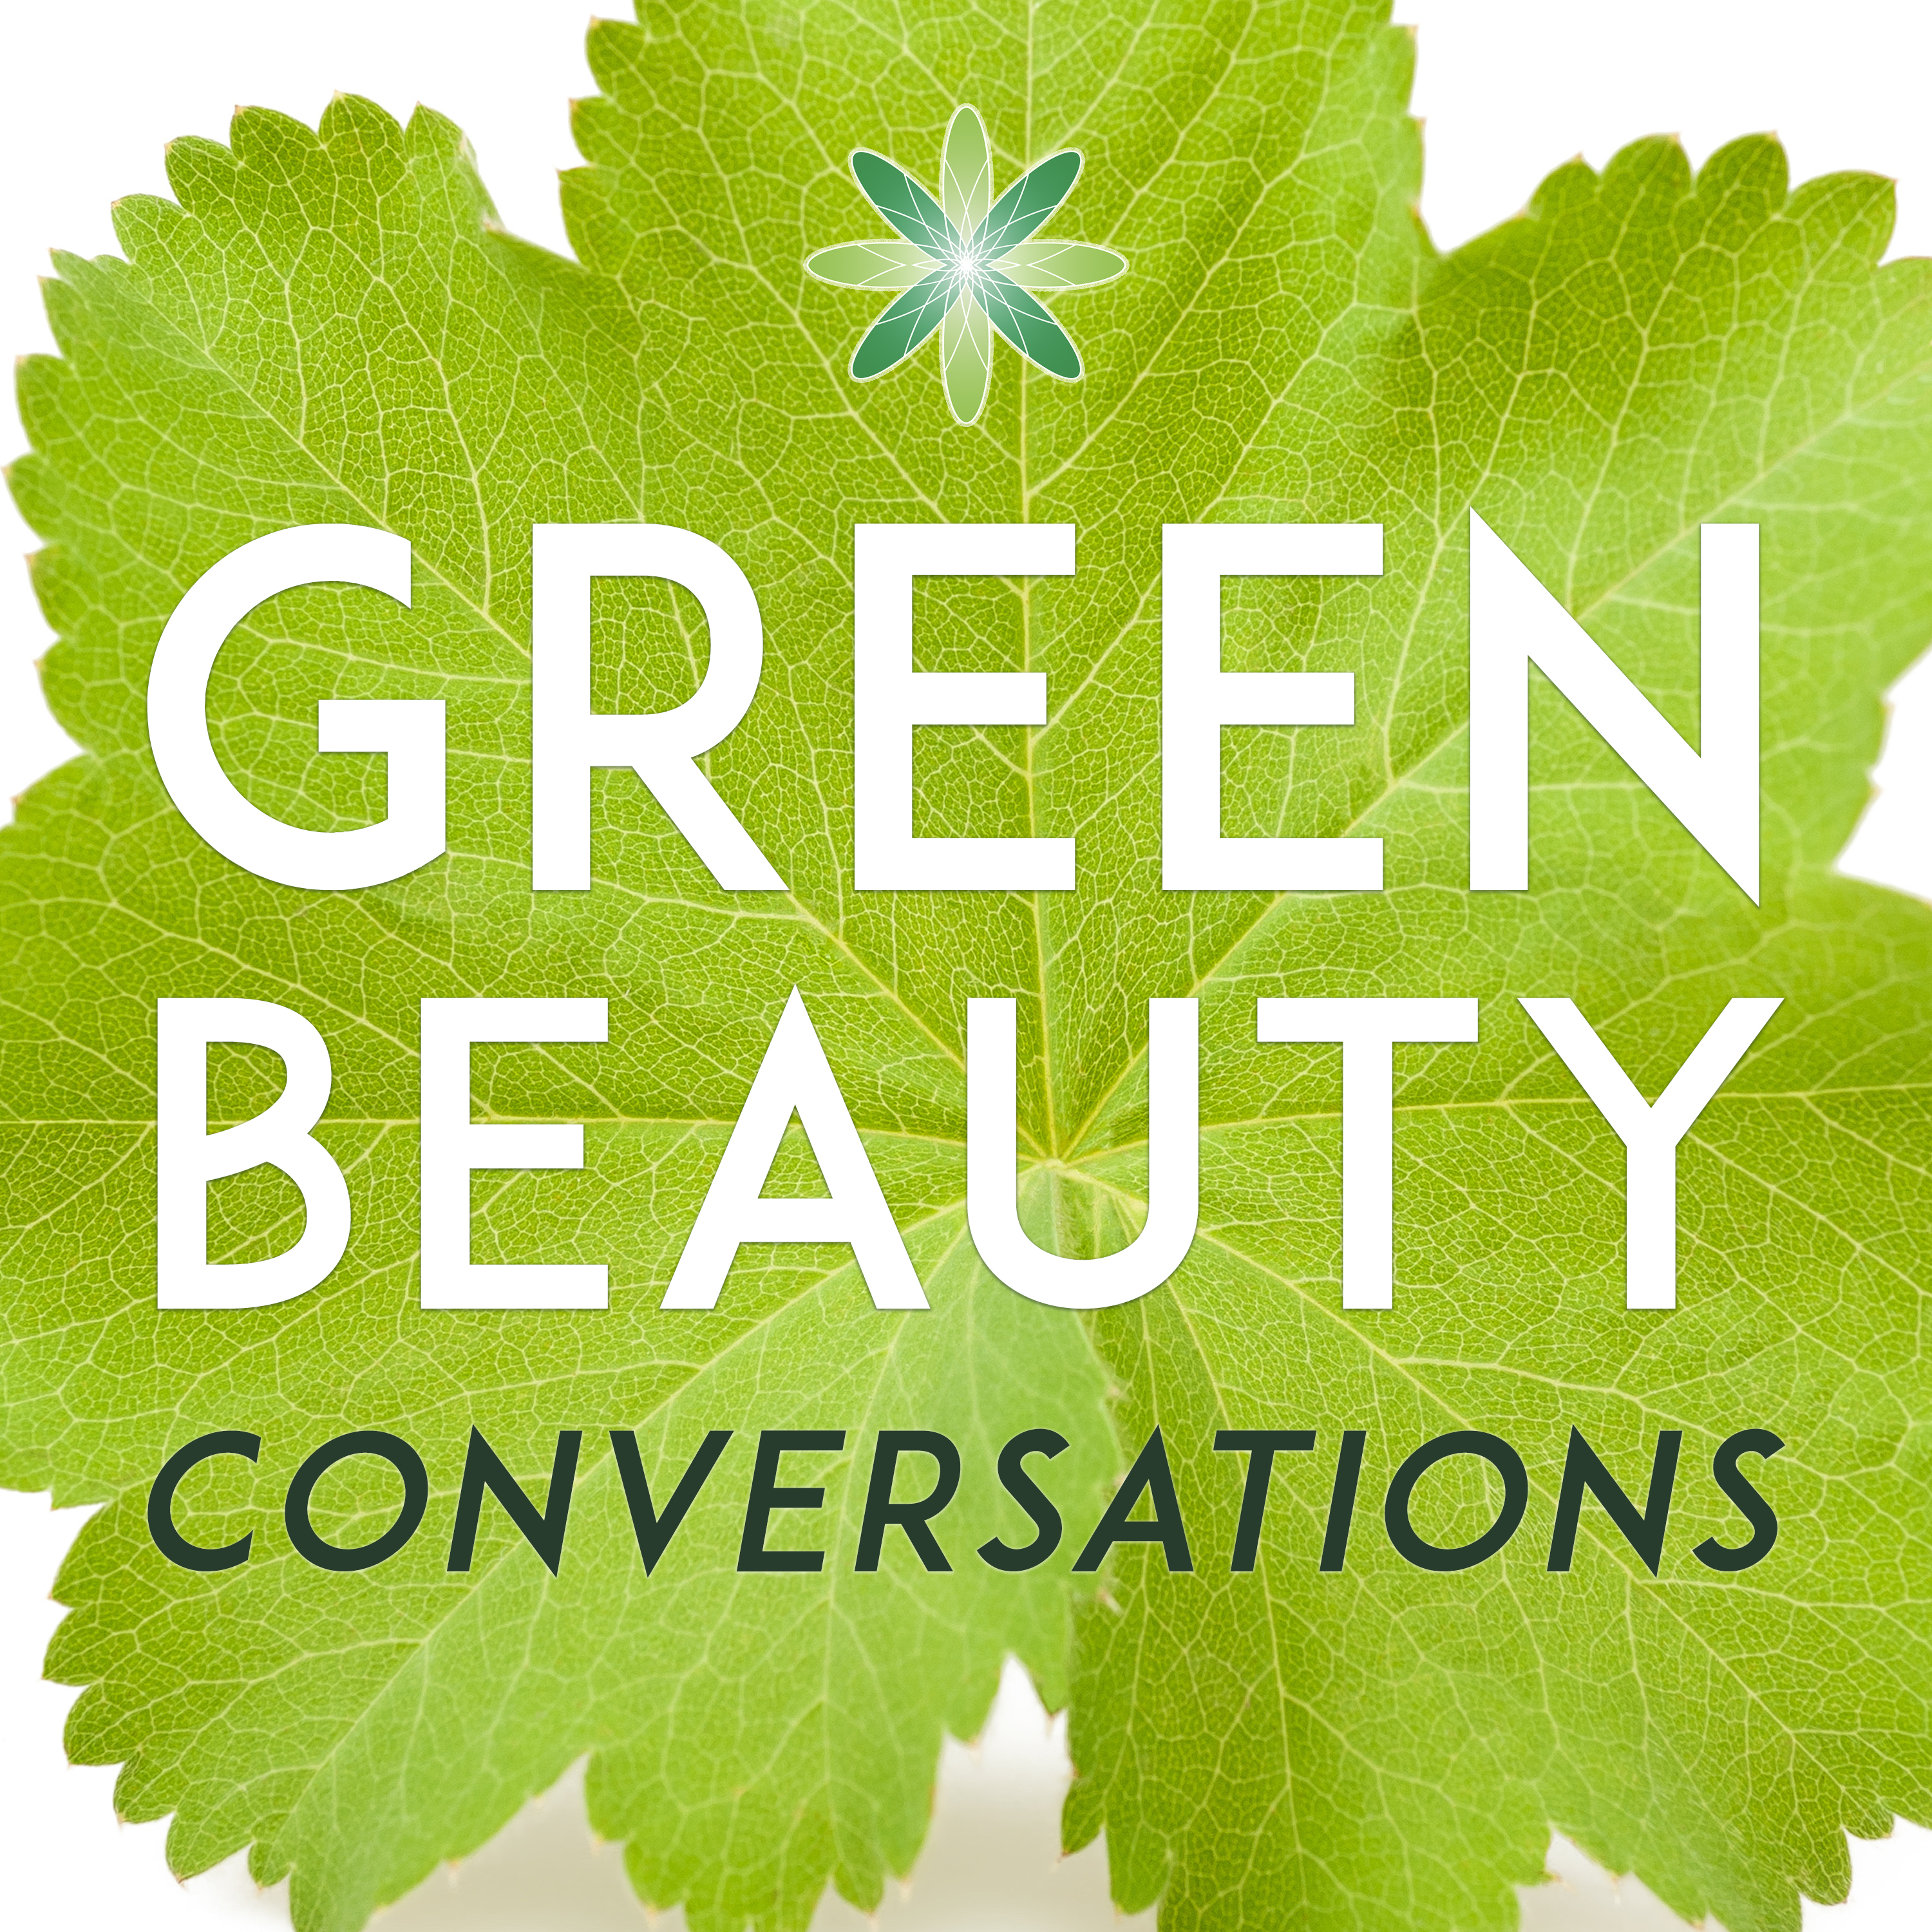 Green Beauty Conversations by Formula Botanica | Organic & Natural Skincare | Cosmetic Formulation | Indie Beauty Business show art